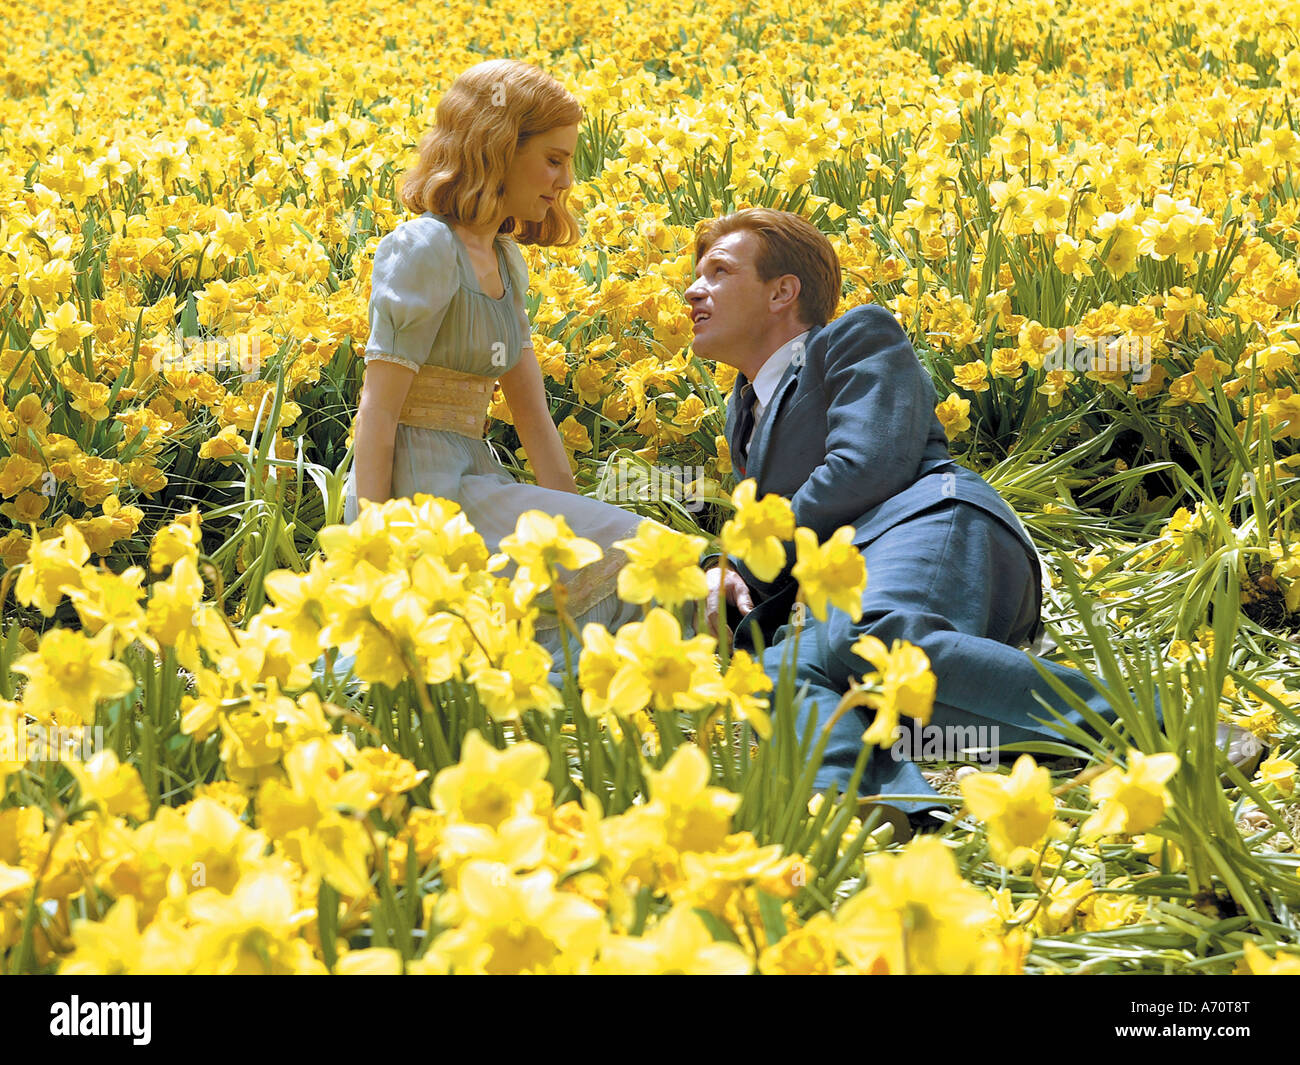 big fish 2003 columbia film with ewan mcgregor and alison